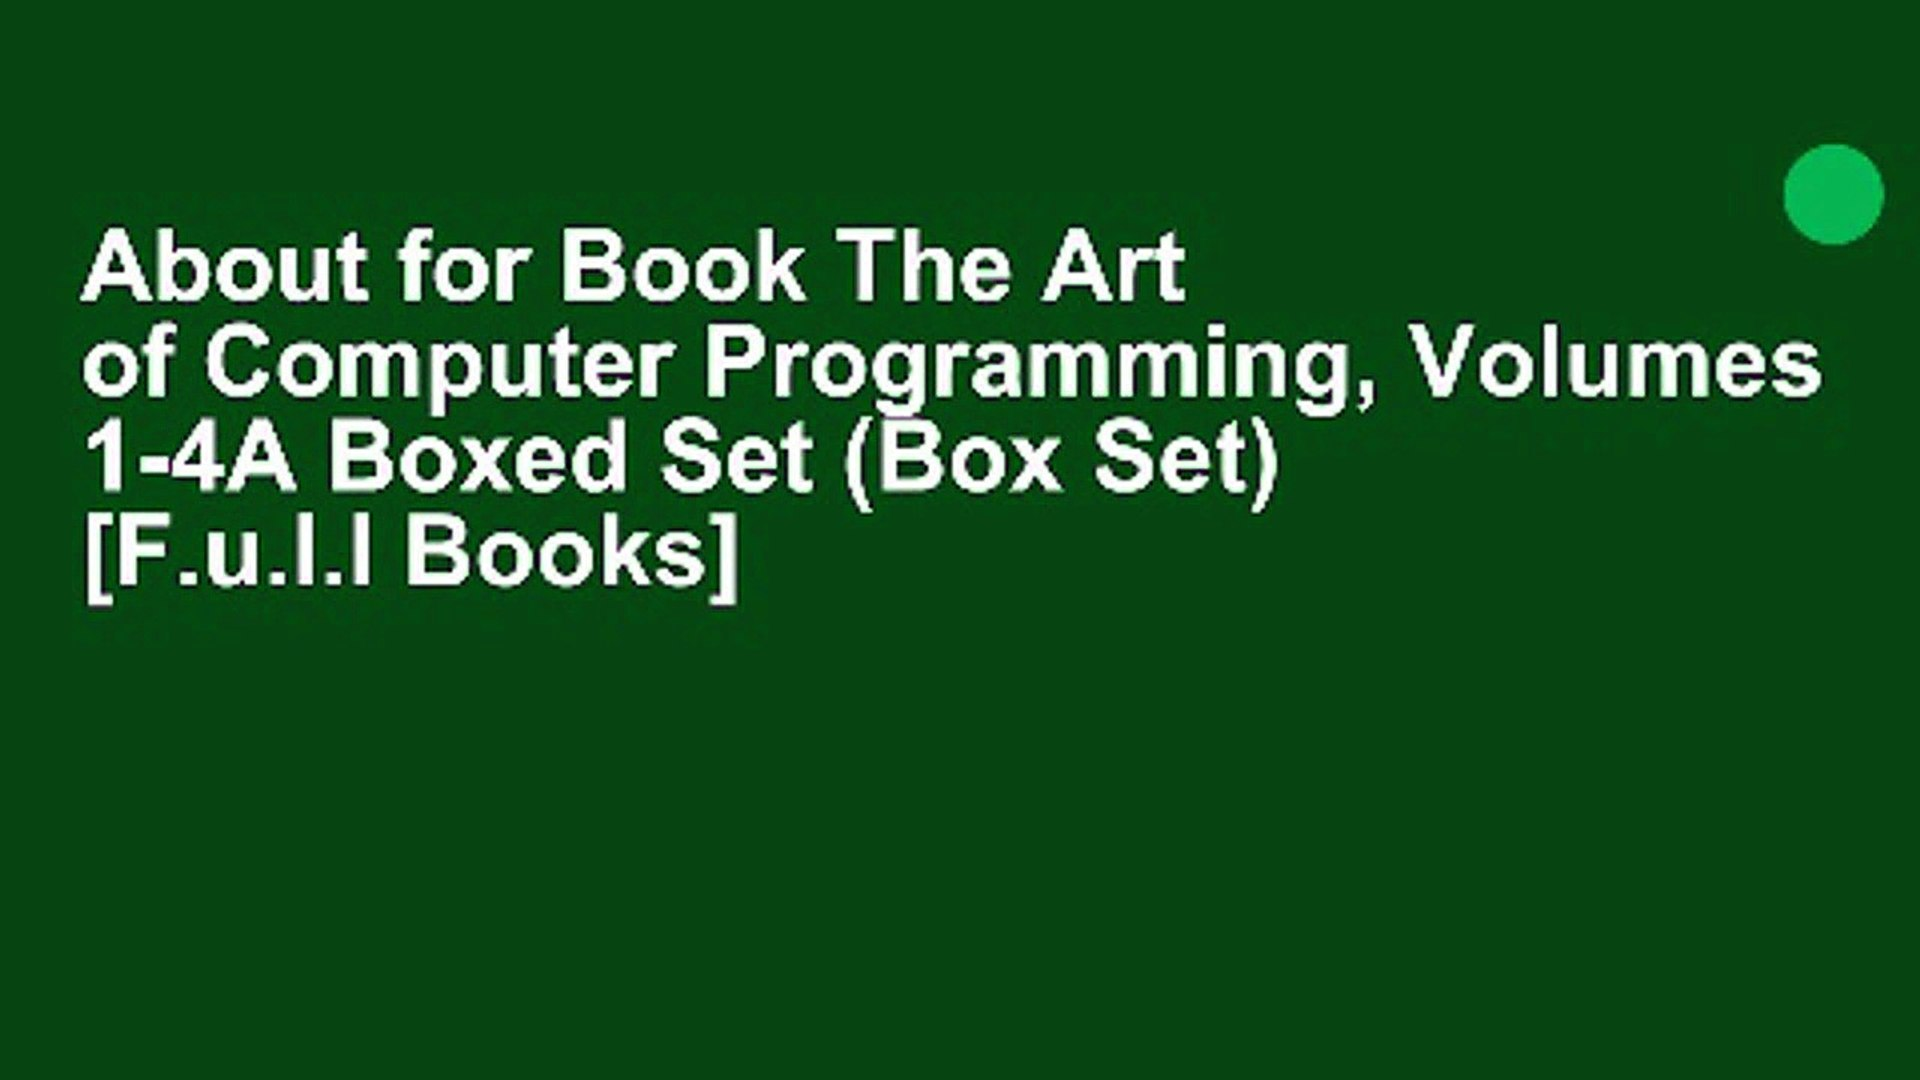 About for Book The Art of Computer Programming, Volumes 1-4A Boxed Set (Box  Set) [F u l l Books]